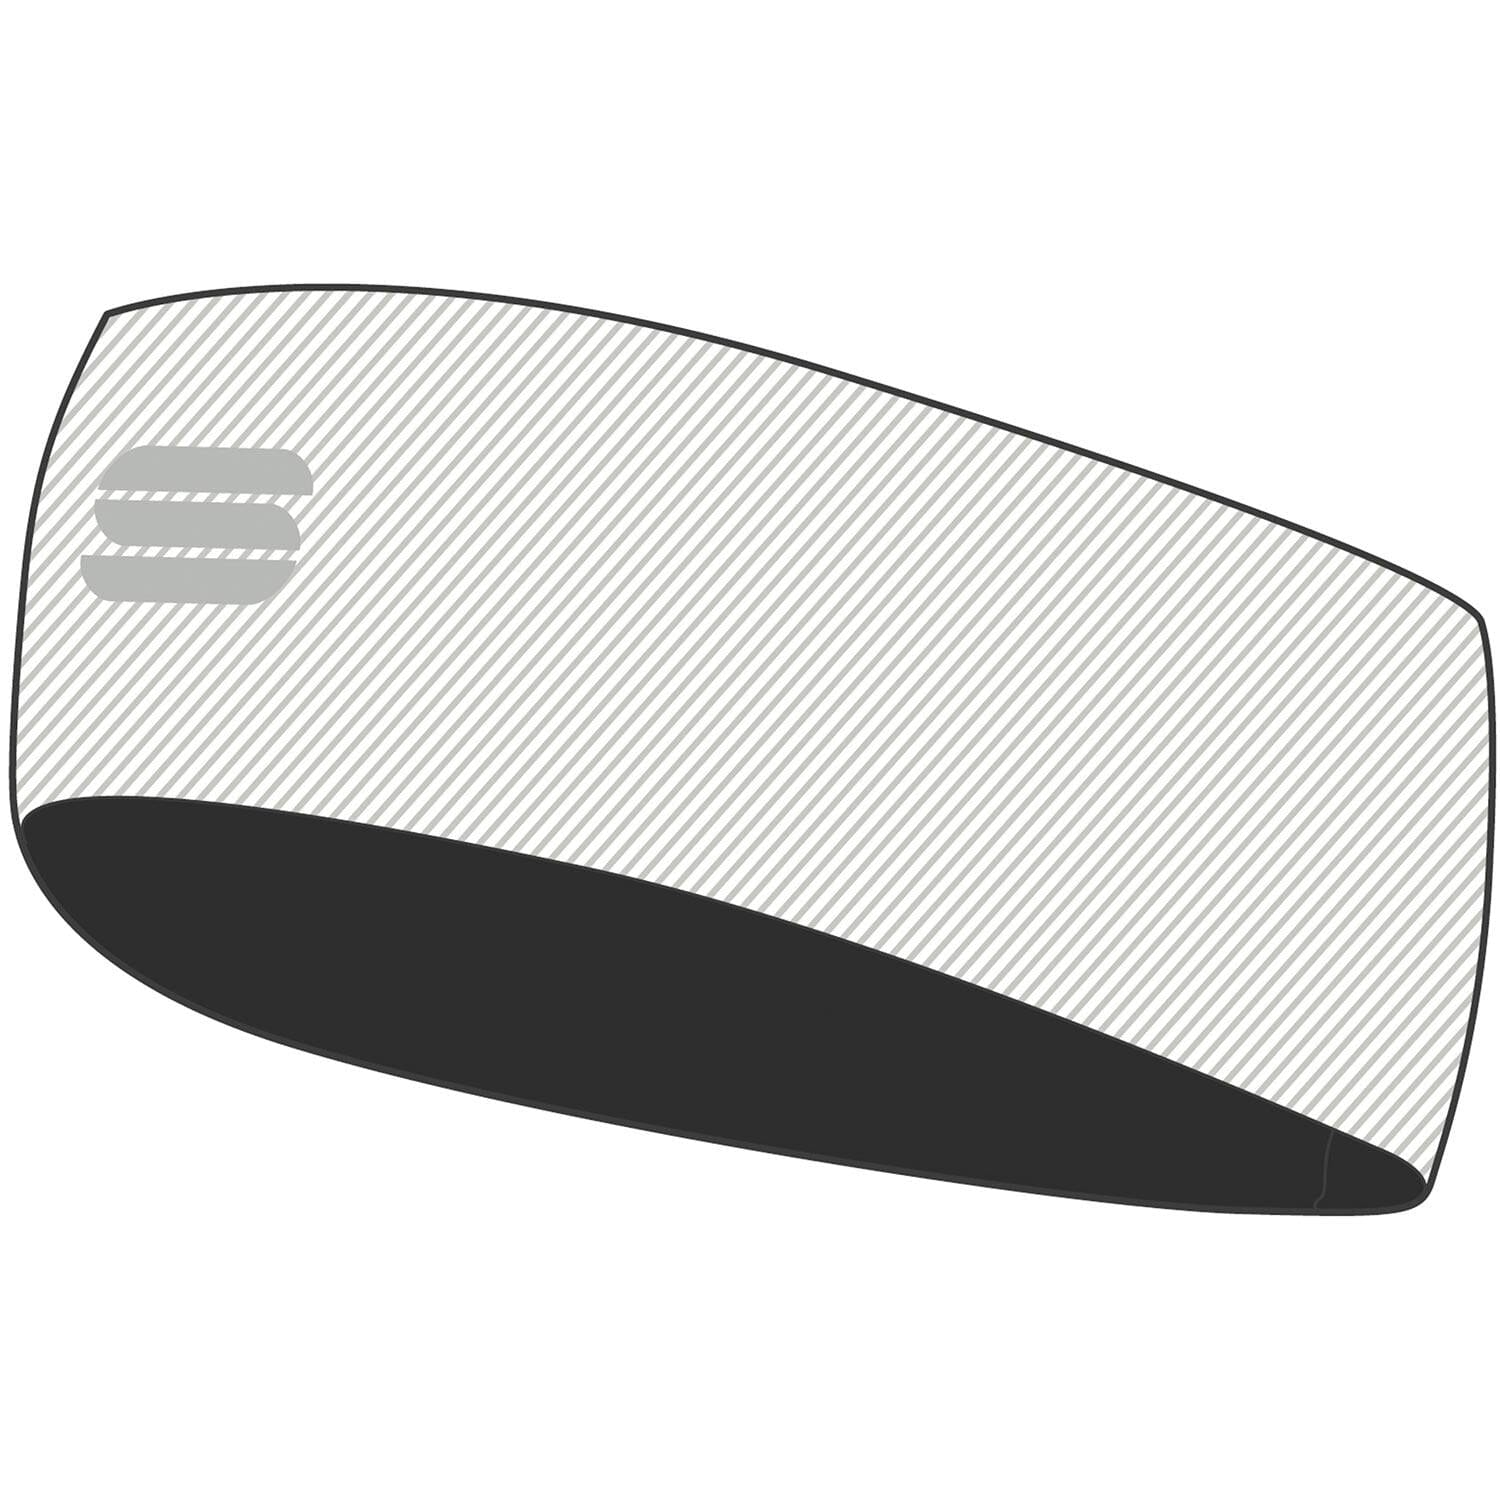 Sportful-Sportful Race Women's Headband-White-UNI-SF210651018-saddleback-elite-performance-cycling